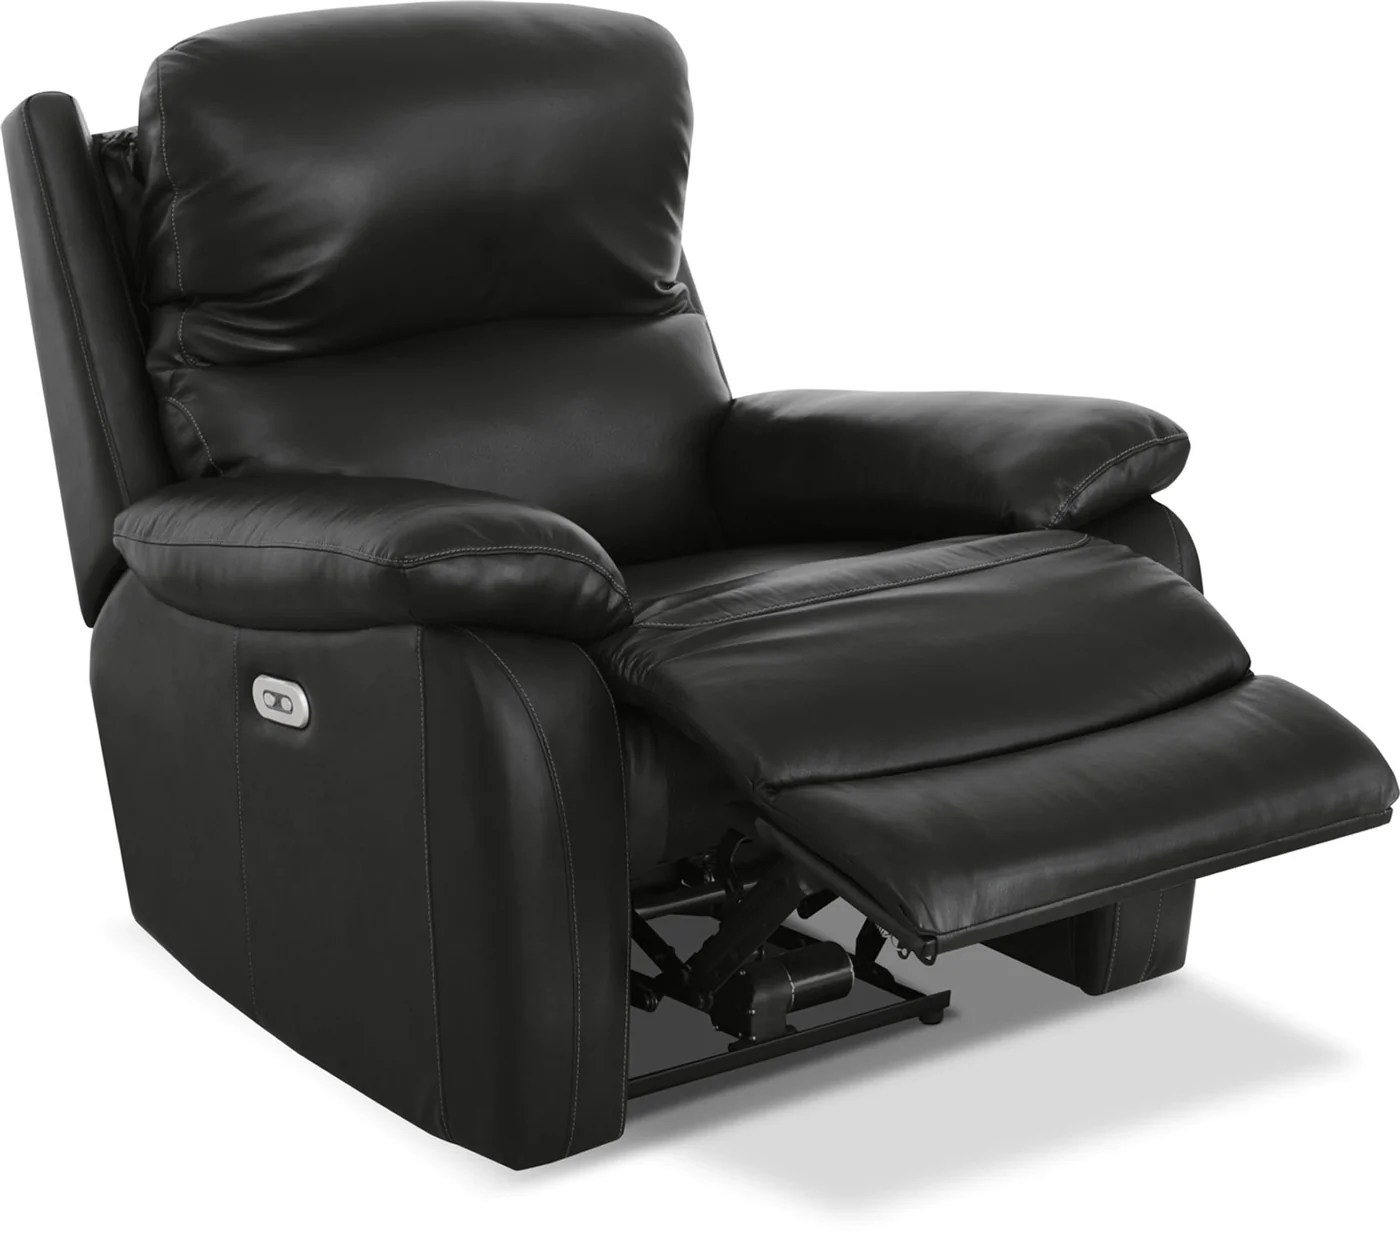 Leather Reclining Chairs Grove Genuine Leather Power Reclining Chair With Adjustable Headrest Black